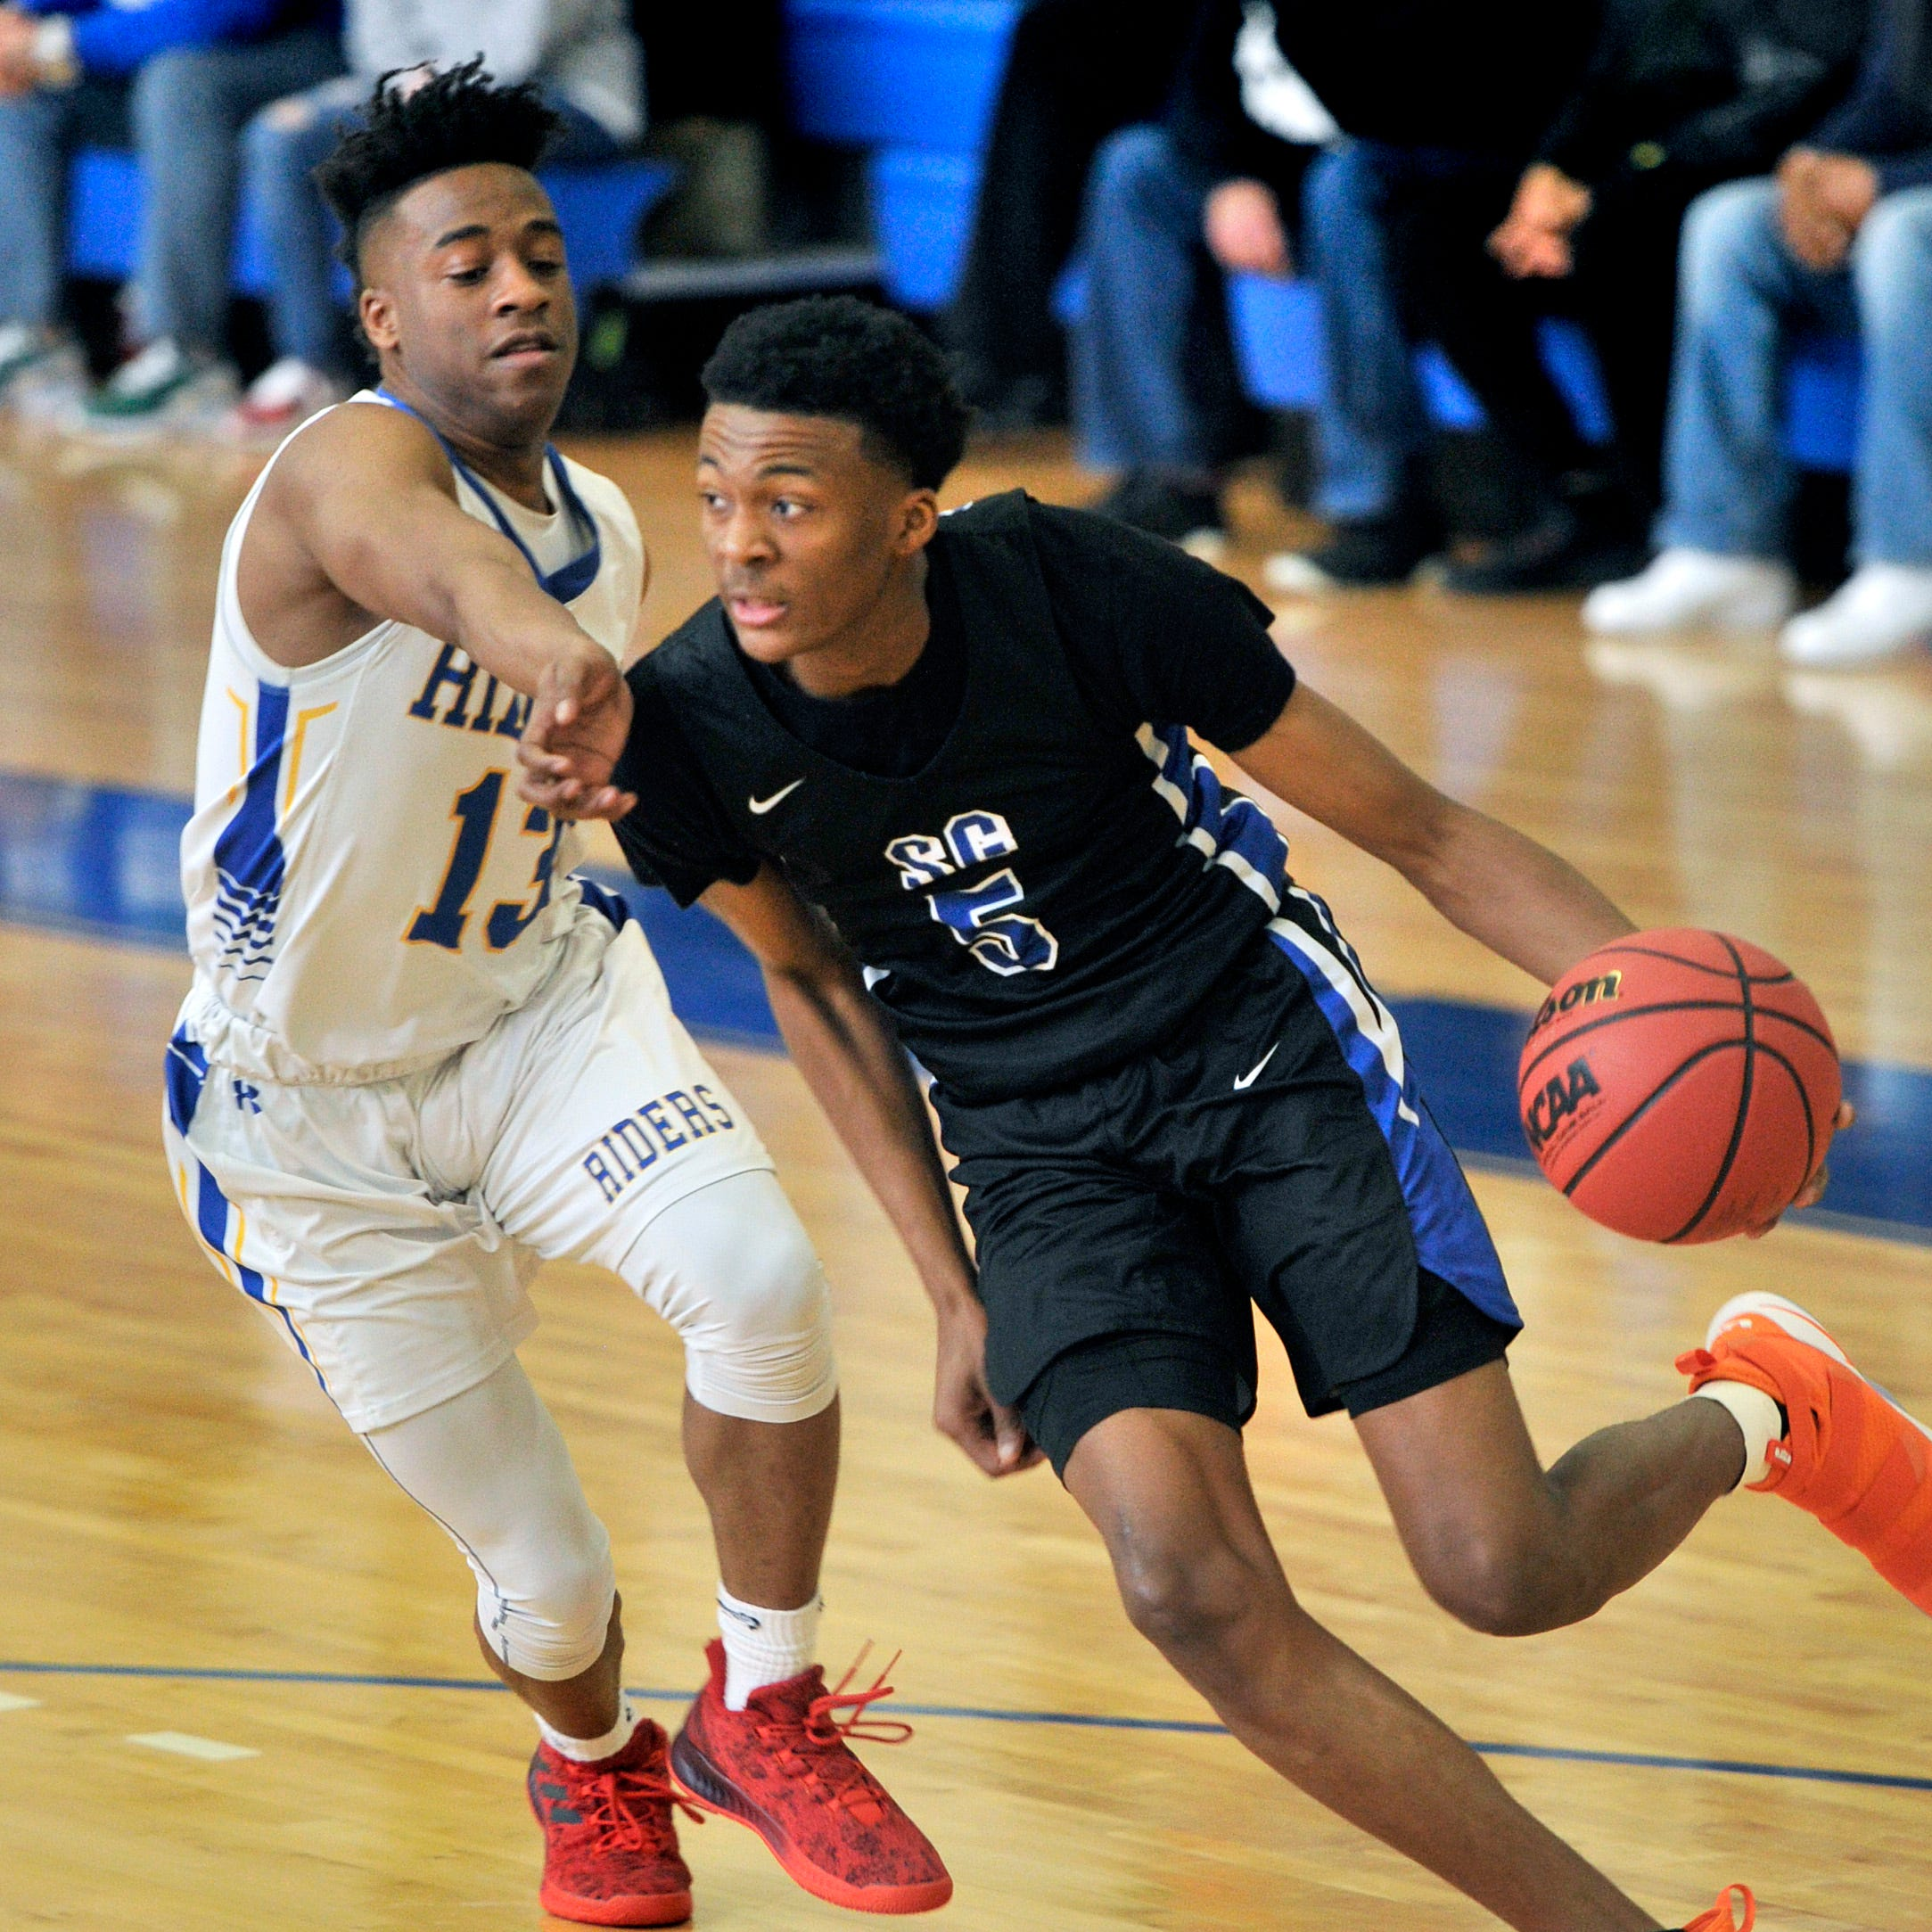 'Bones' emerges after tragic Wilmington fire to become Delaware Boys Basketball Player of the Year